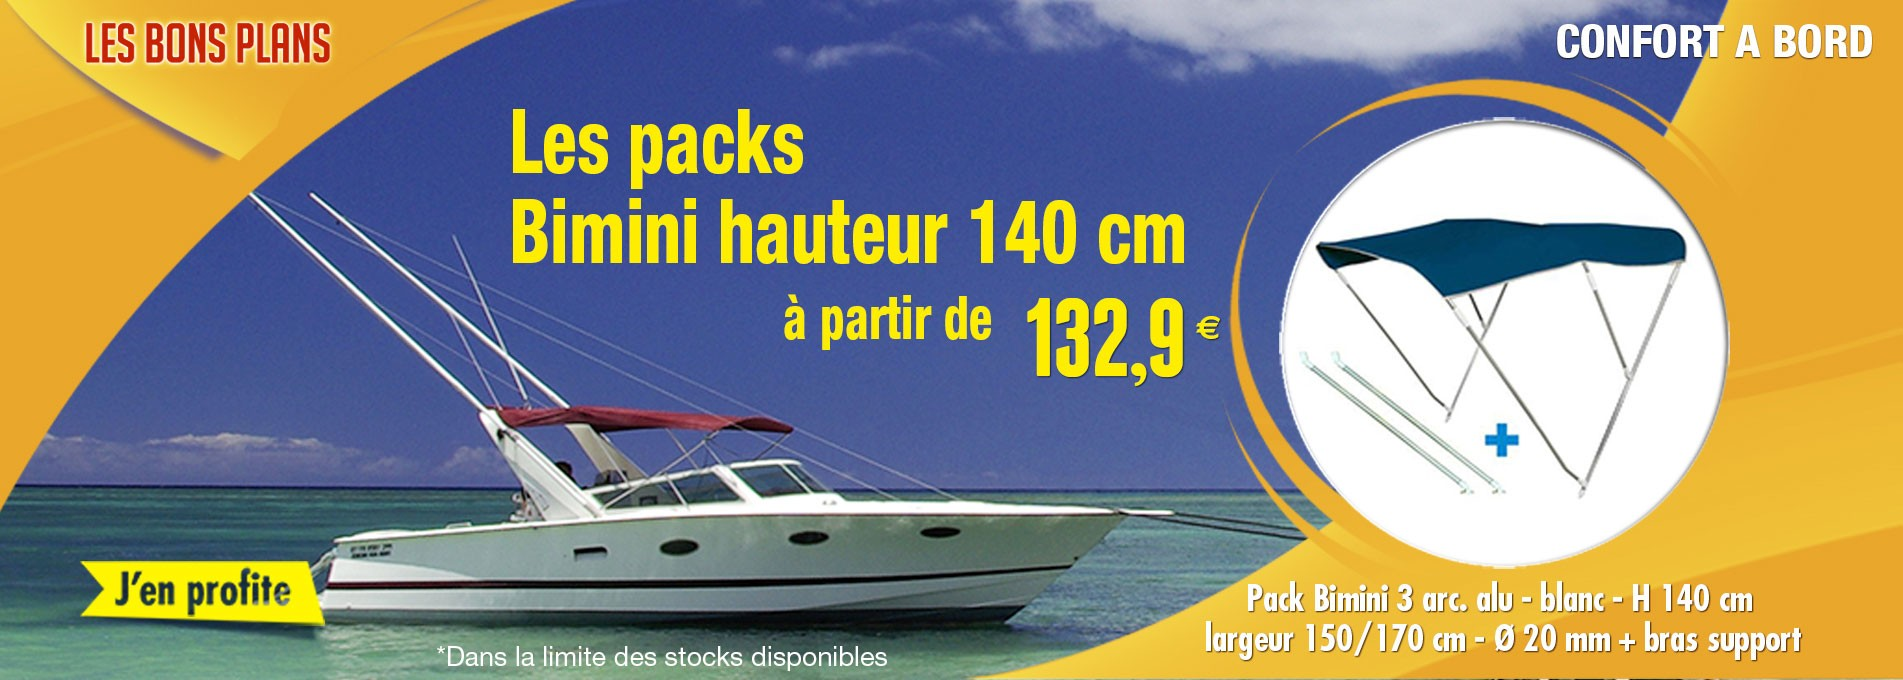 PACKS BIMINI